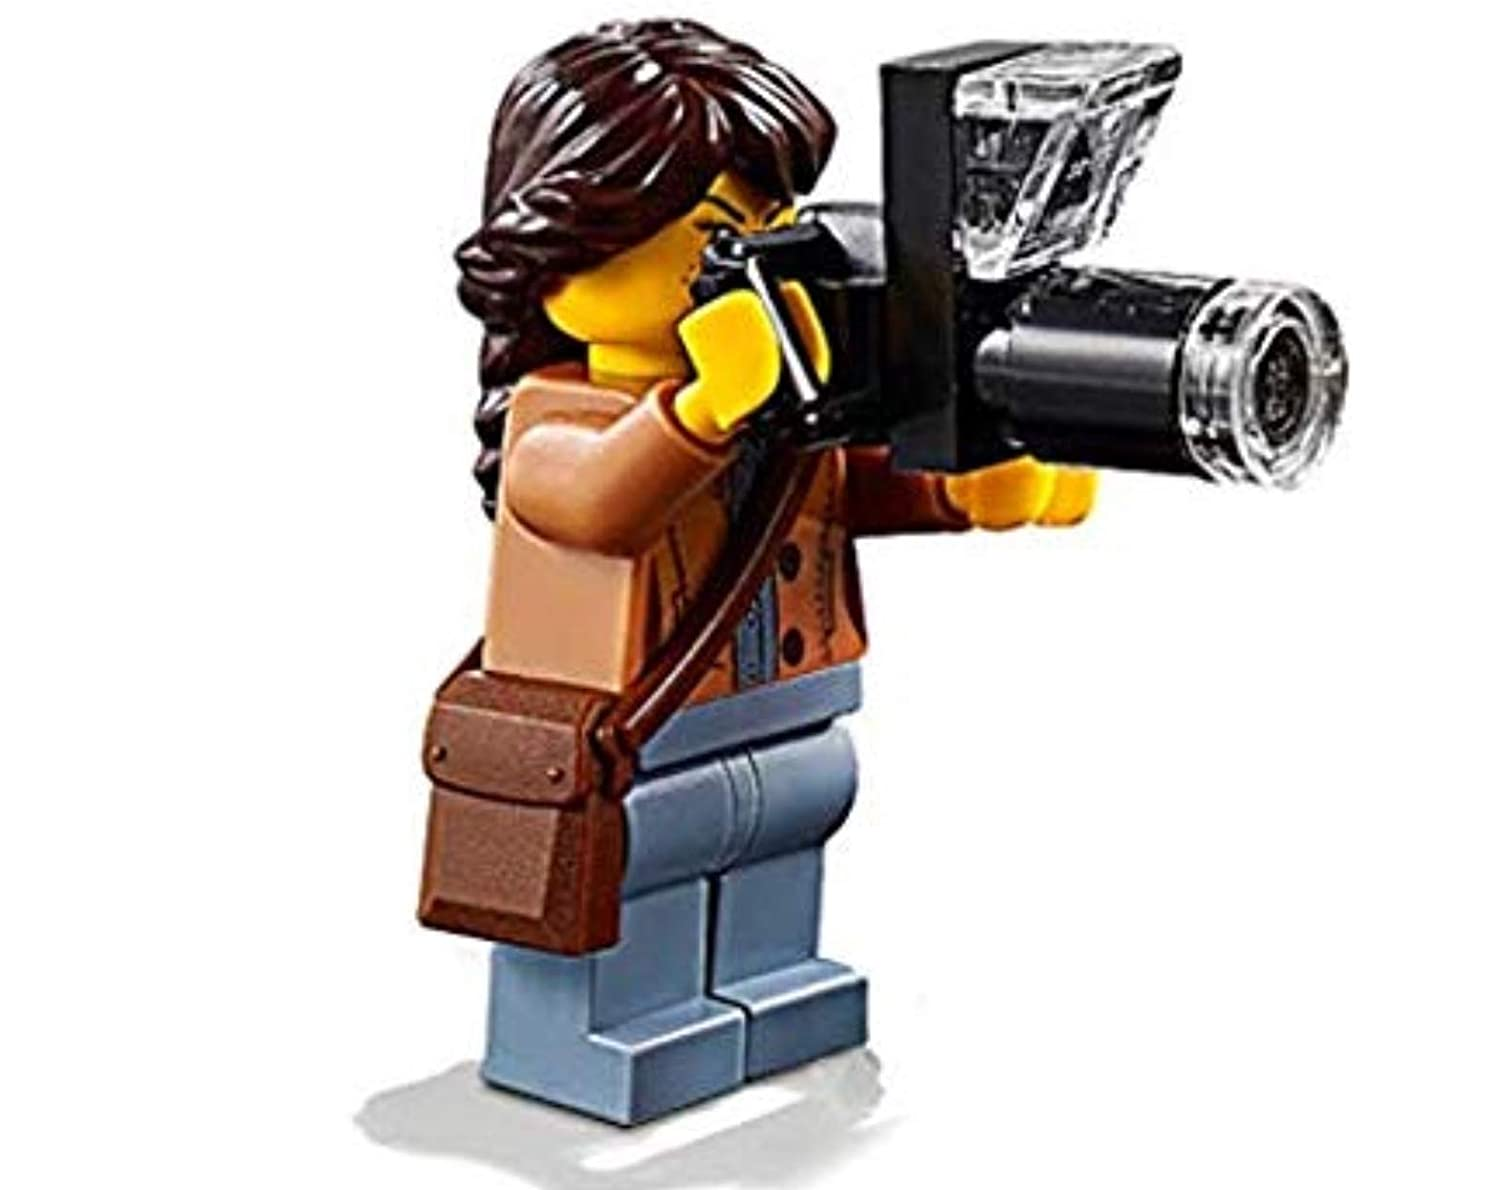 Lego Minifig Camera : Amazon.com: lego outdoor minifigure: nature photographer female